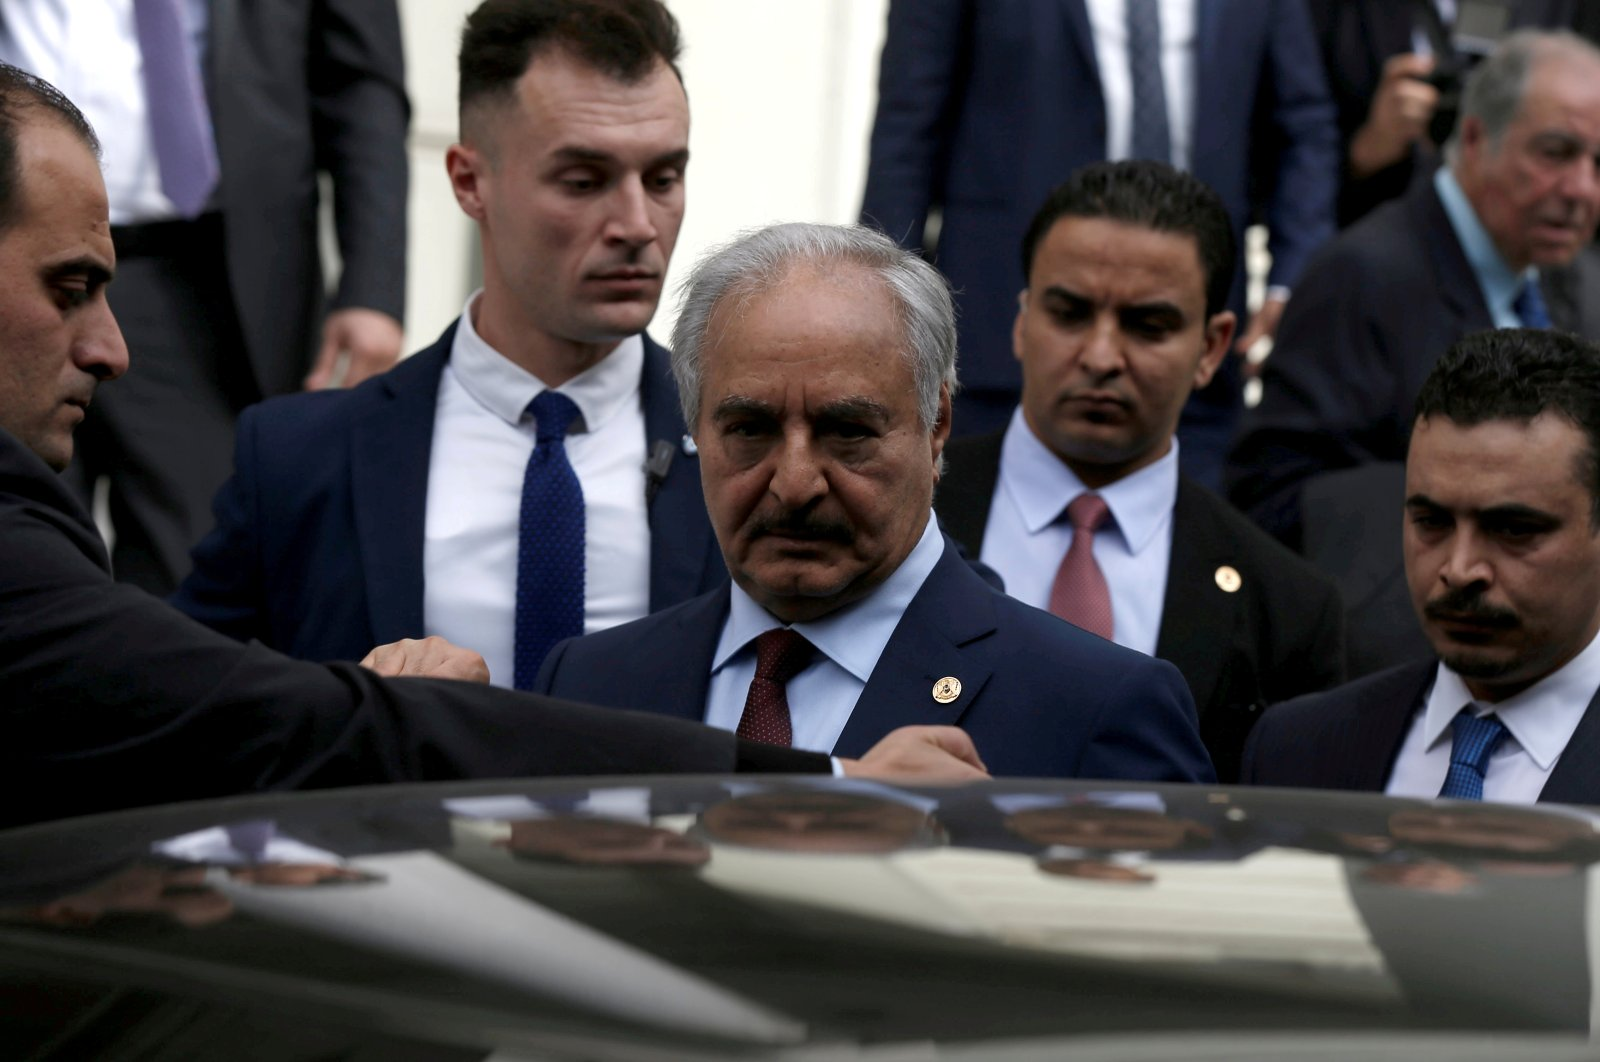 Libya's self-proclaimed Gen. Khalifa Haftar gets into a car after a meeting with Greek Foreign Minister Nikos Dendias at the Foreign Ministry in Athens, Greece, January 17, 2020. (Reuters Photo)